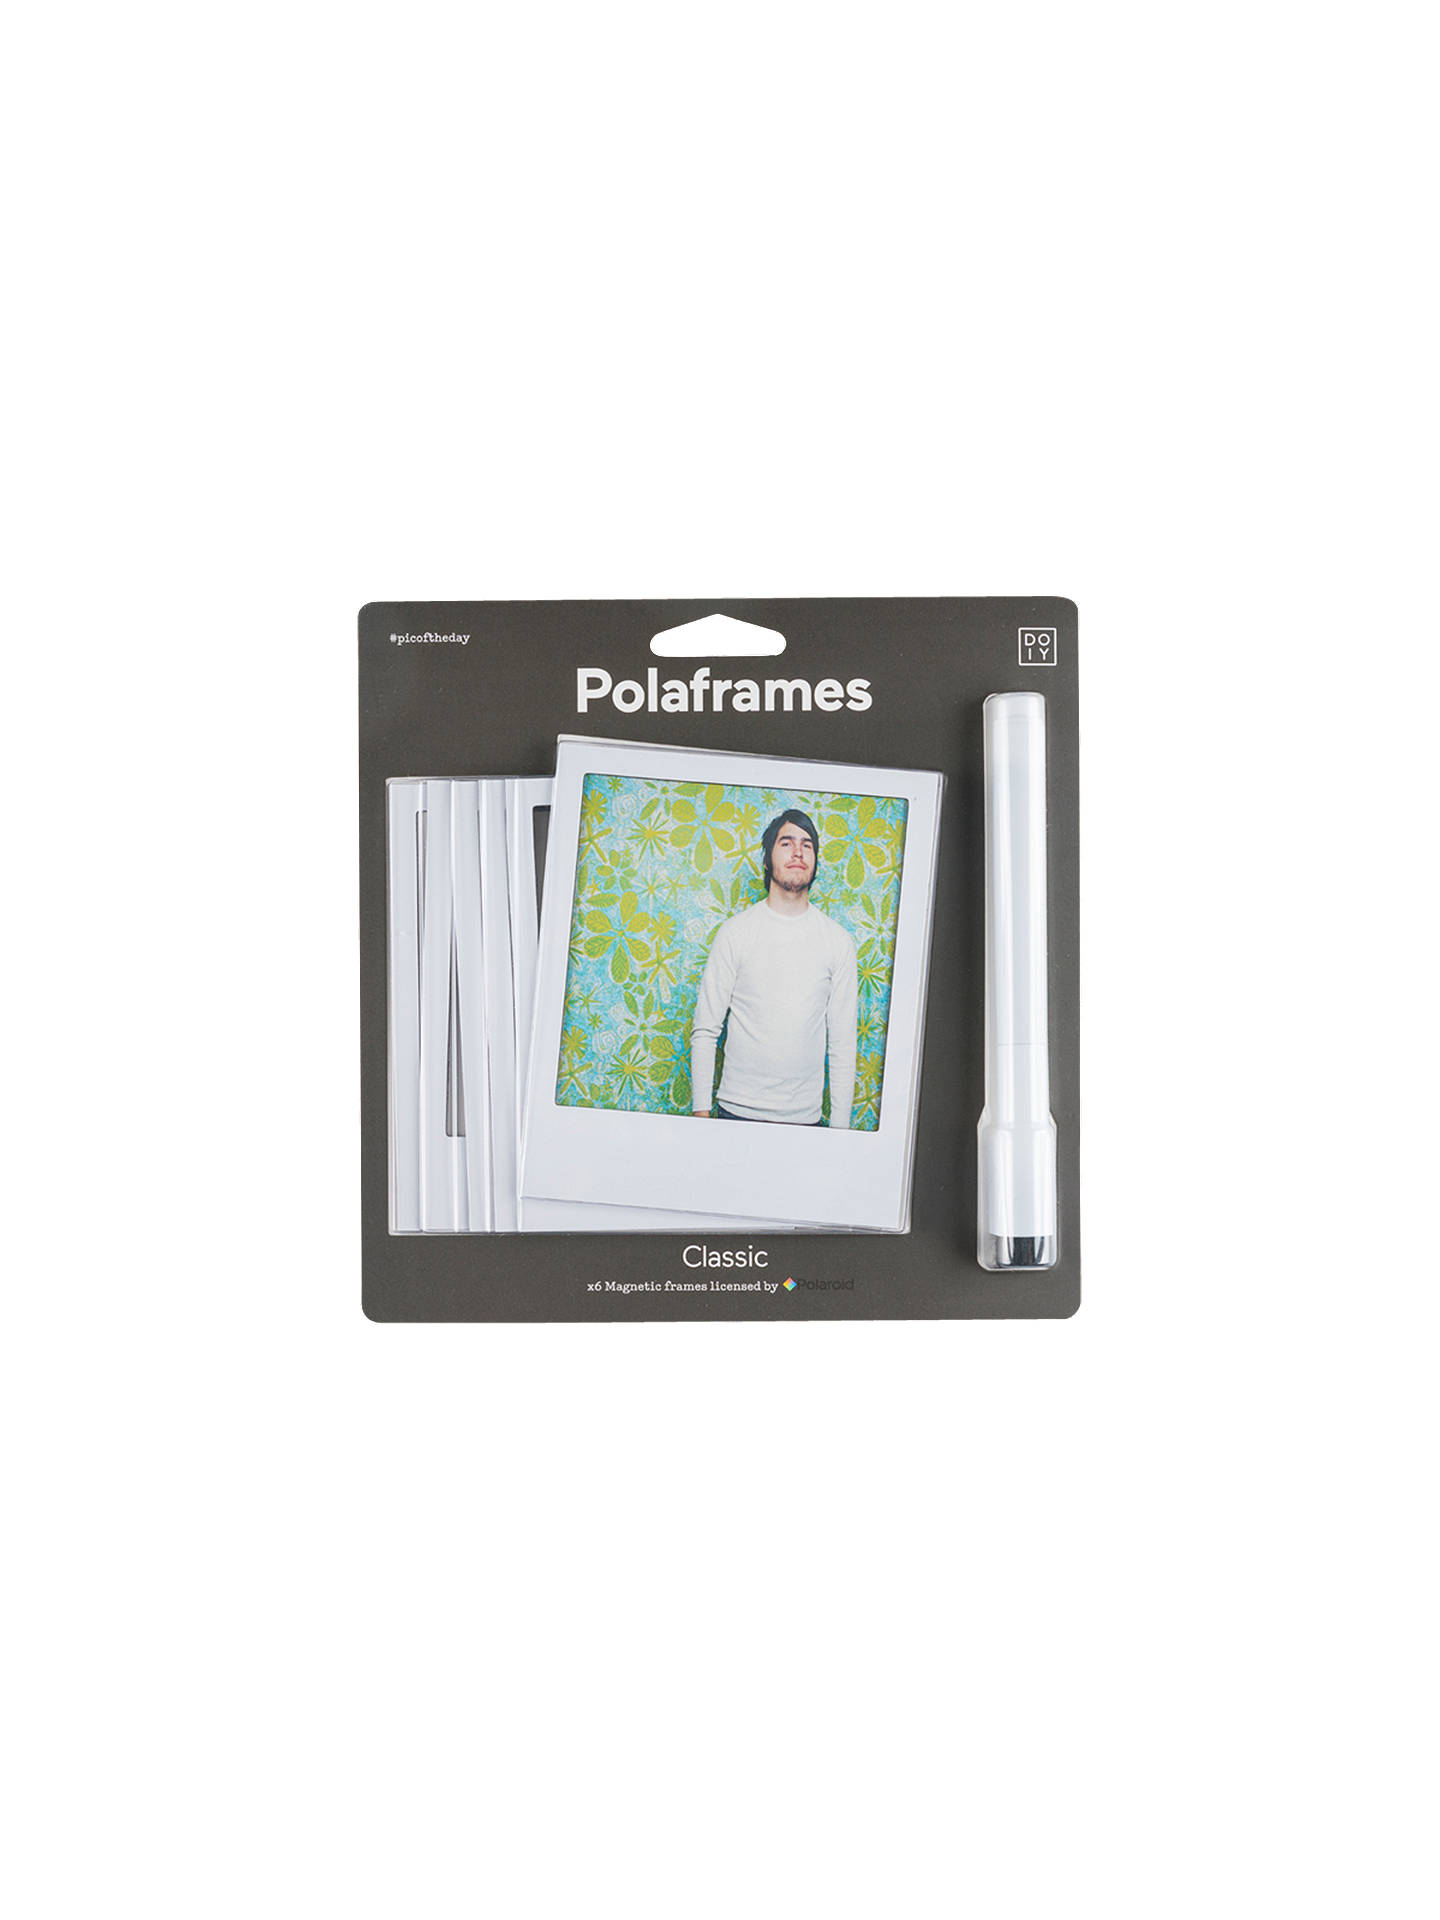 DOIY Classic Polaframes, Pack of 6 at John Lewis & Partners